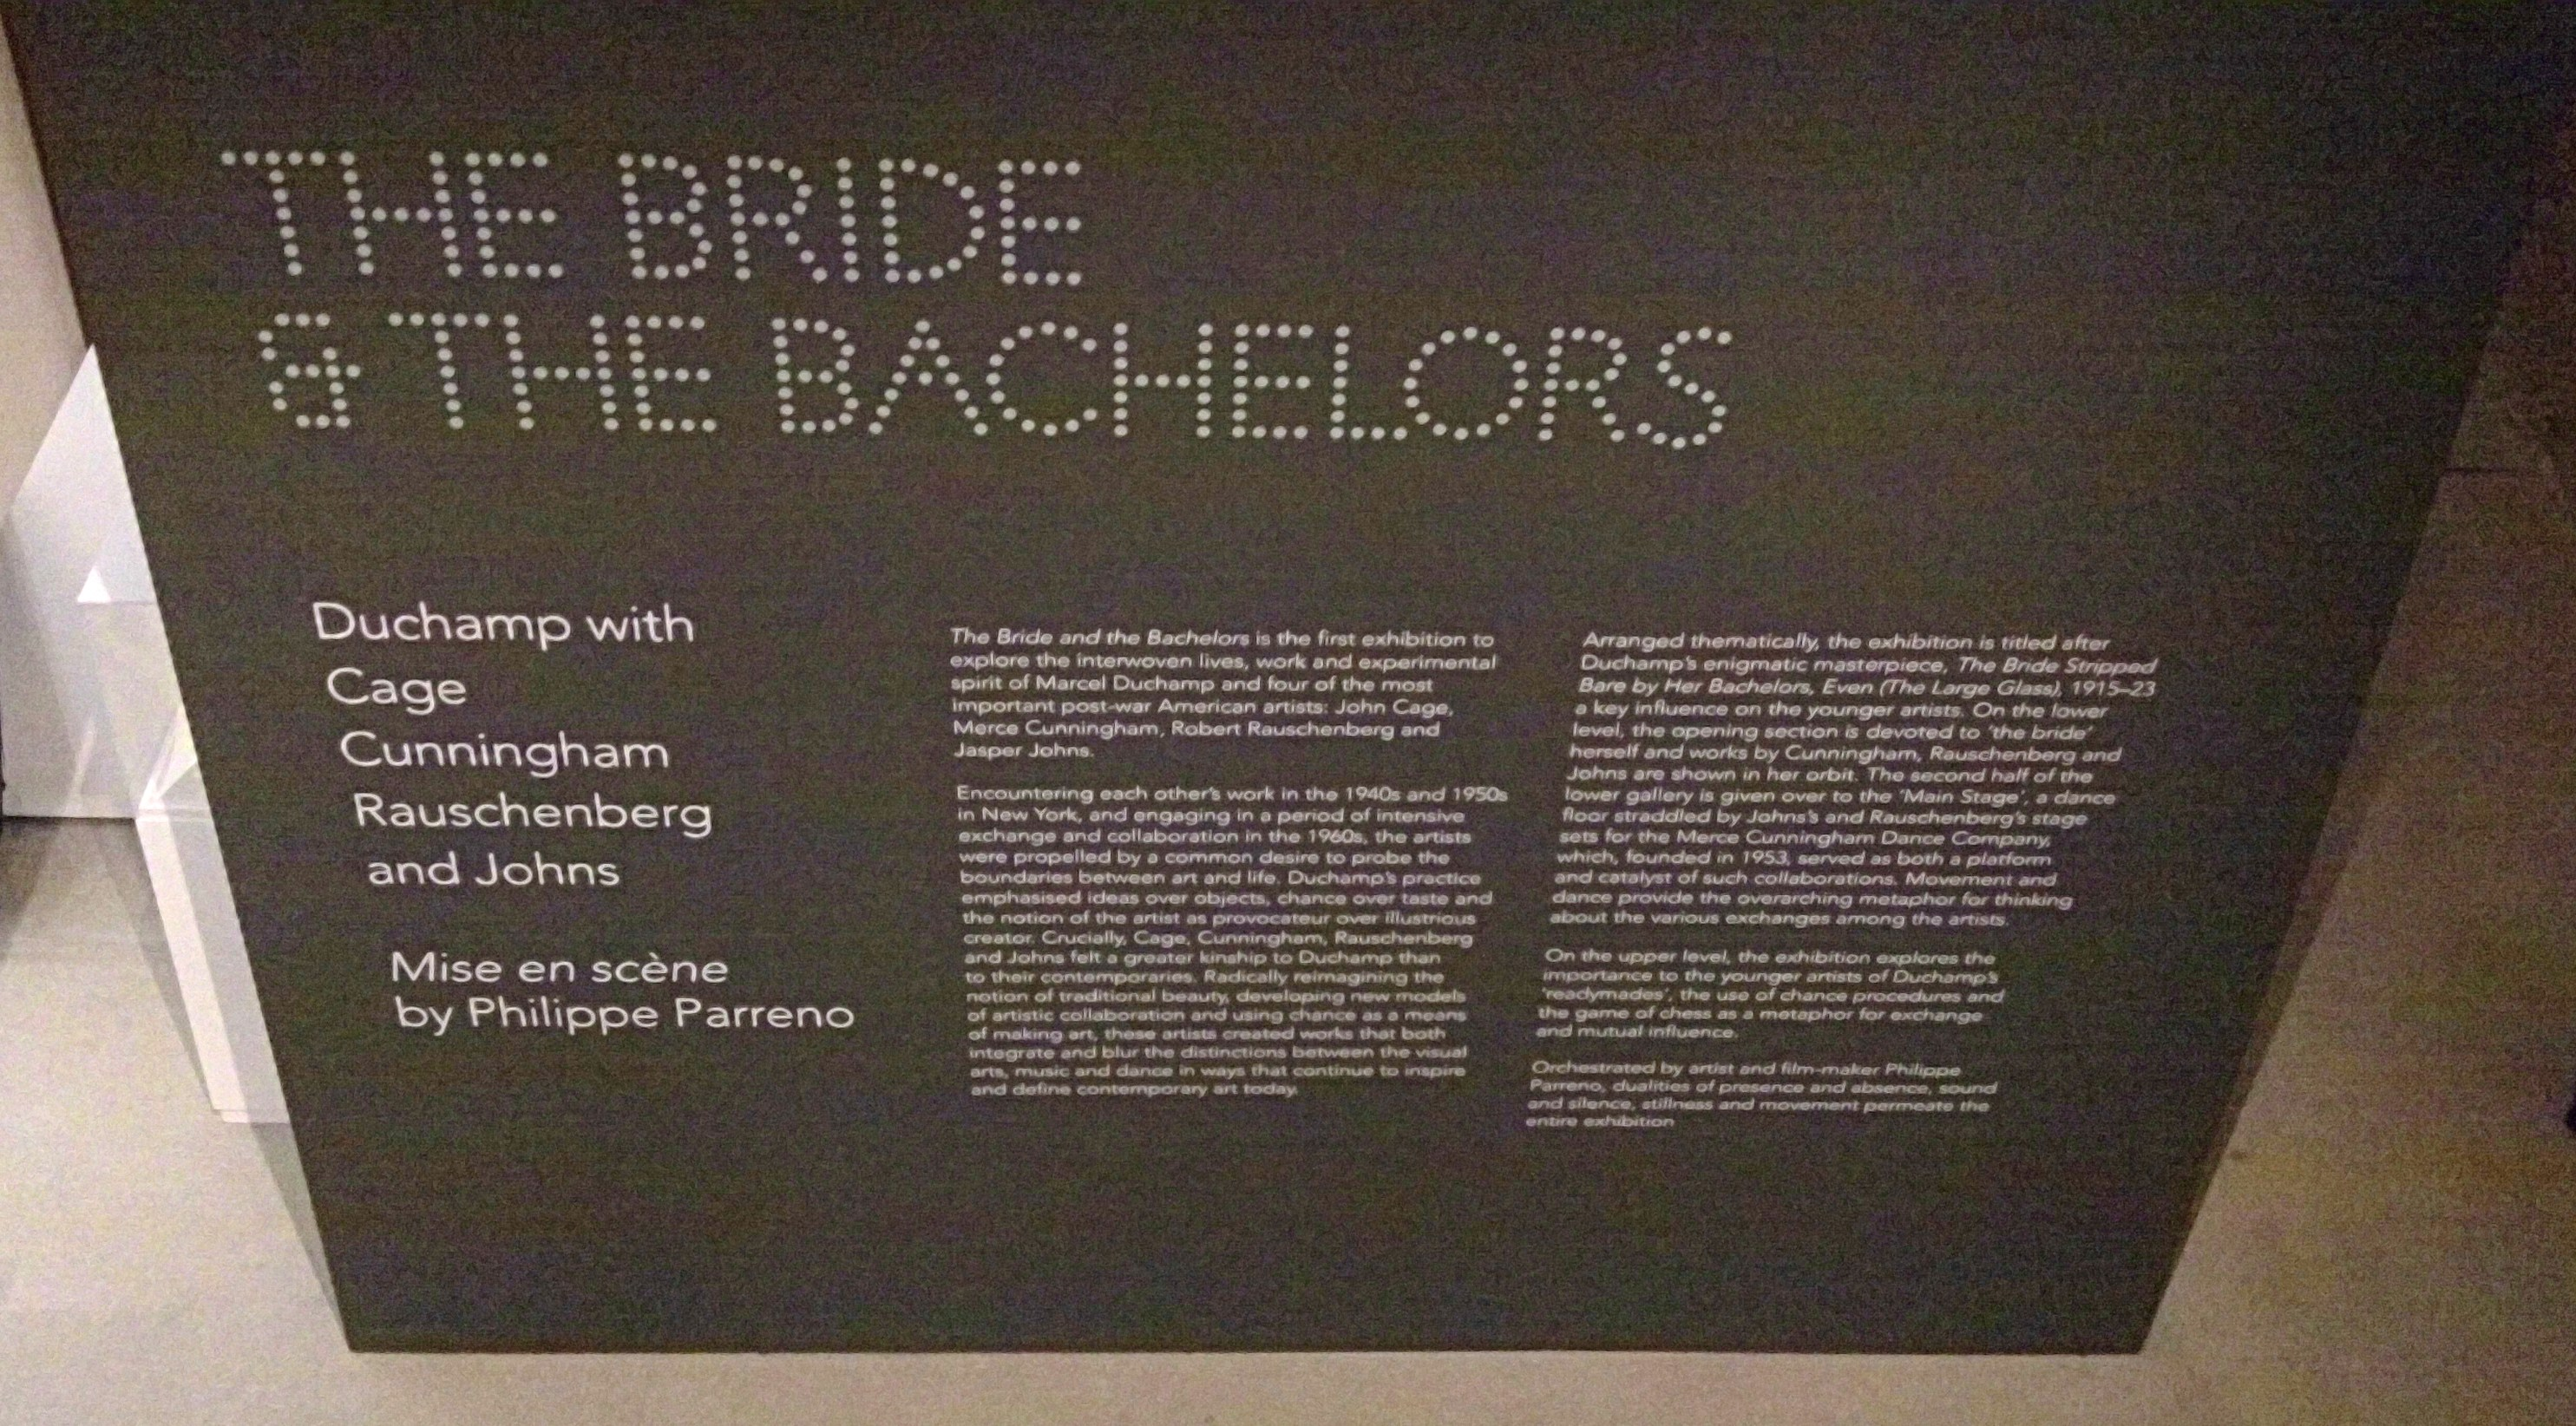 "Exhibición ""The Bride and the Bachelors"" en la Galería Barbican"